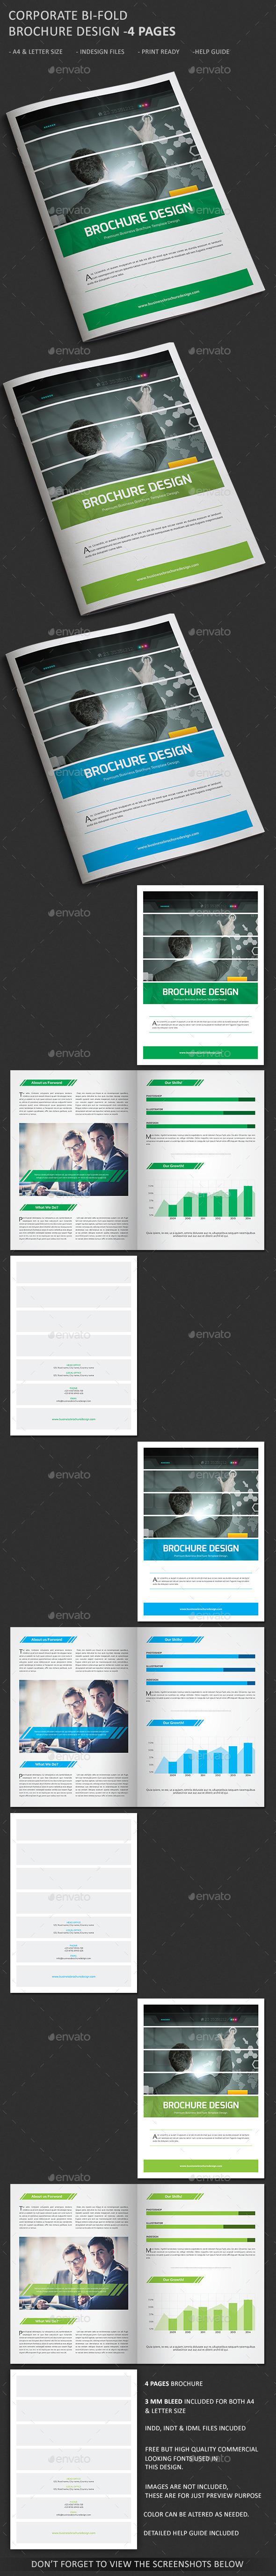 Corporate Bi-Fold Brochure – 4 Pages - Corporate Brochures